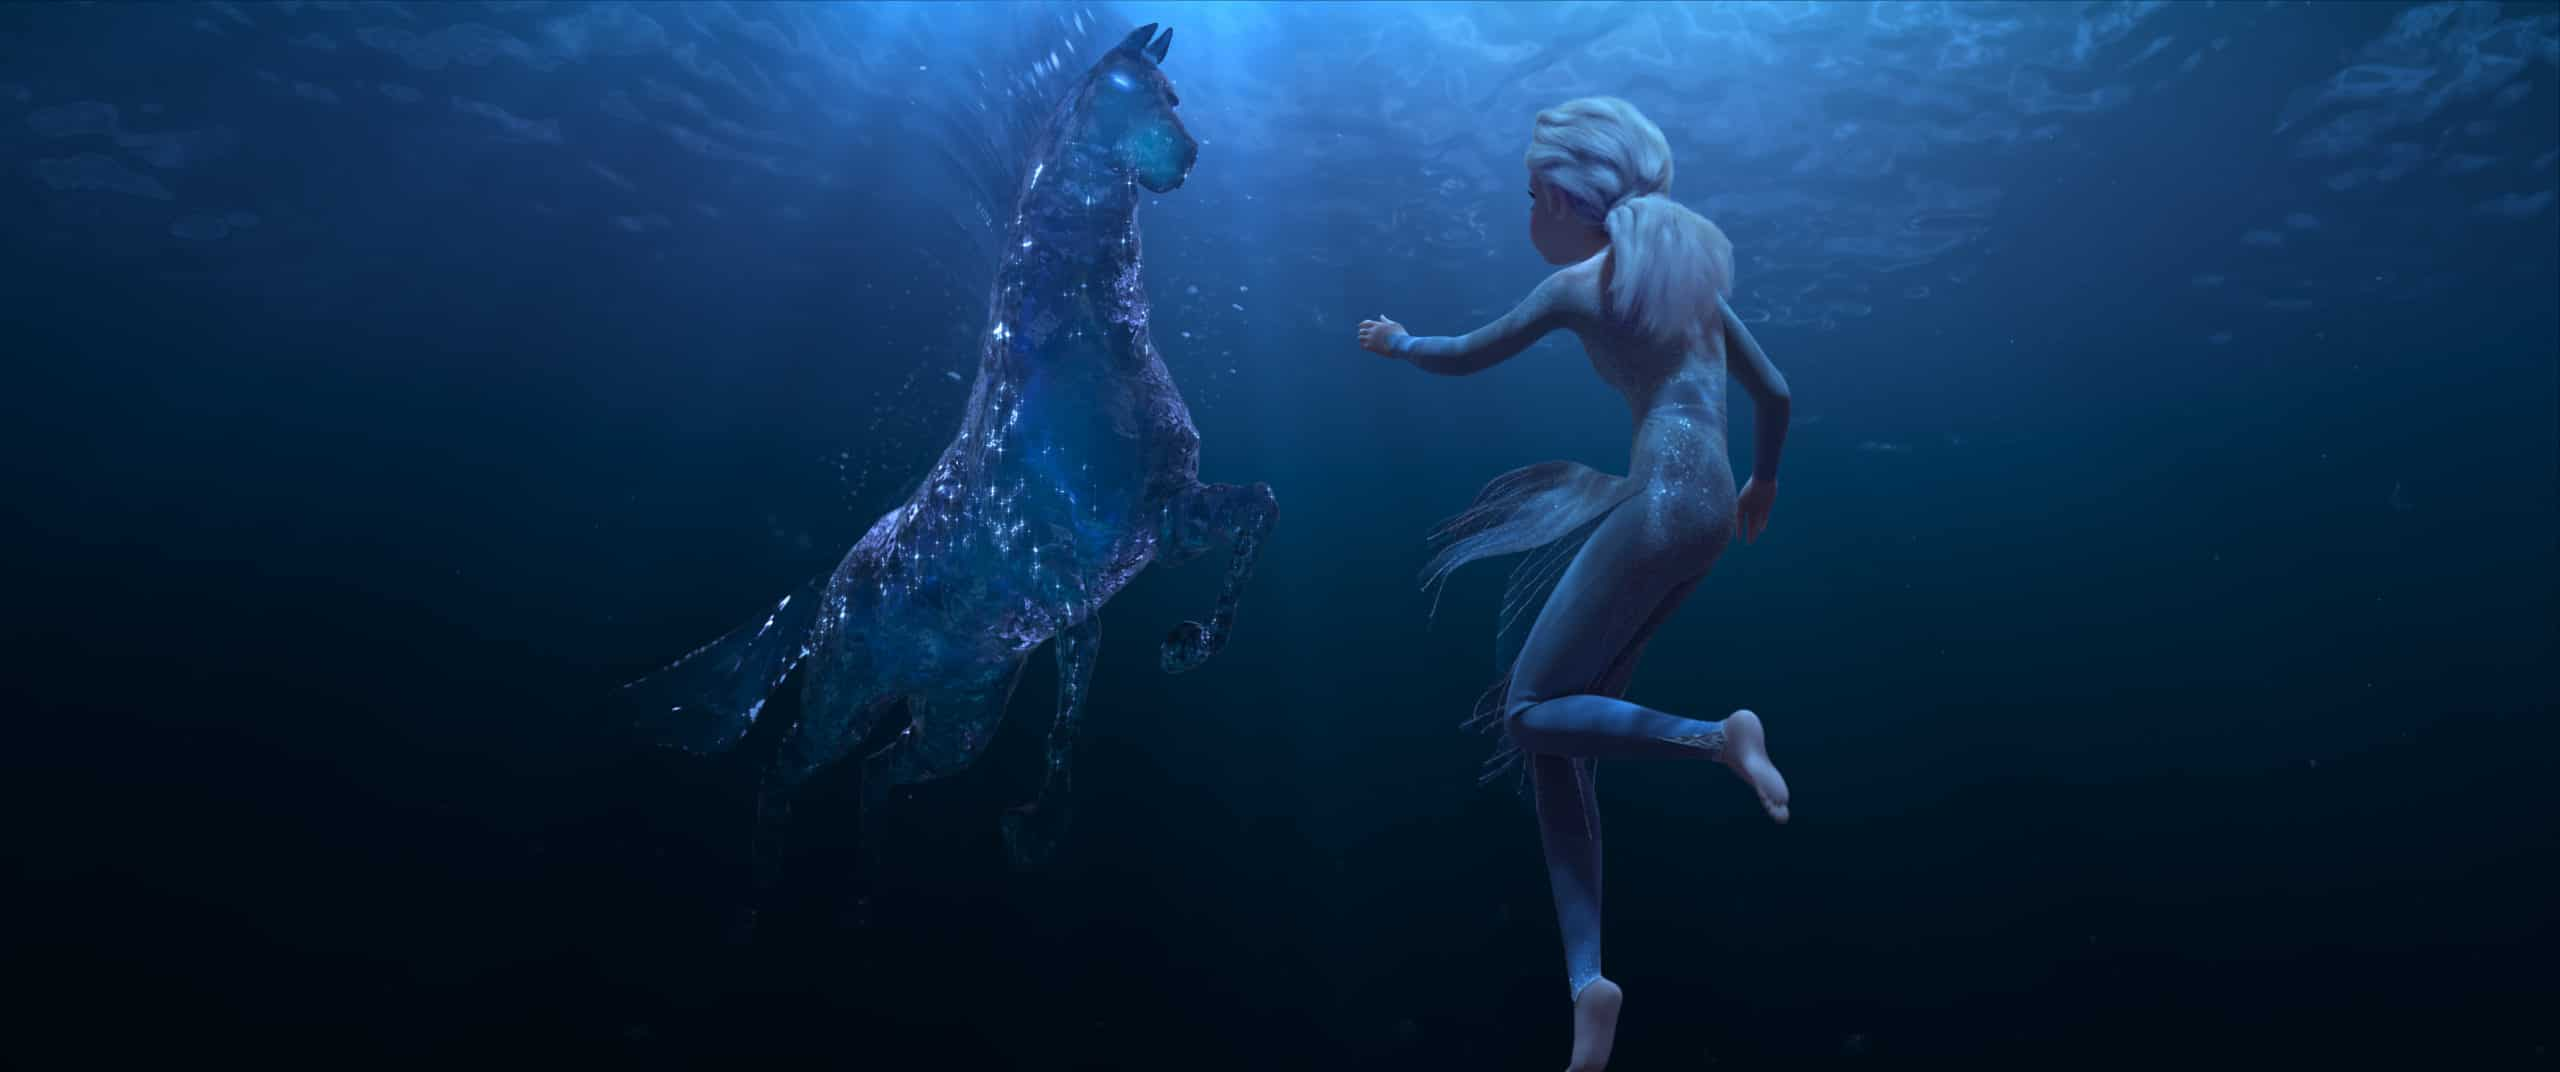 "Elsa encounters a Nokk—a mythical water spirit that takes the form of a horse—who uses the power of the ocean to guard the secrets of the forest. Featuring the voice of Idina Menzel as Elsa, ""Frozen 2"" opens in U.S. theaters November 22"